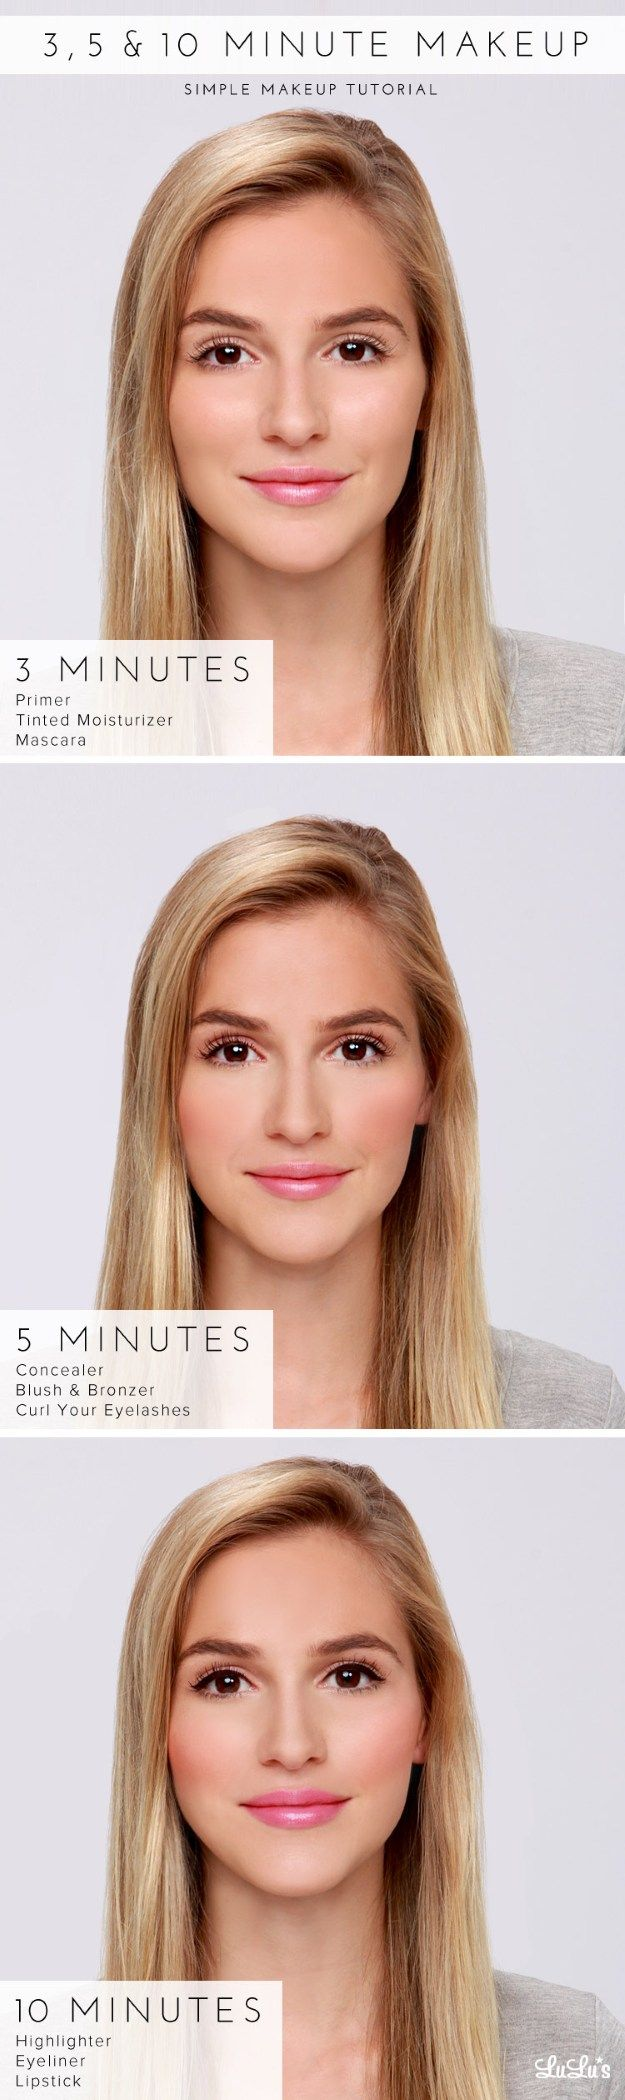 Easy Makeup For Work